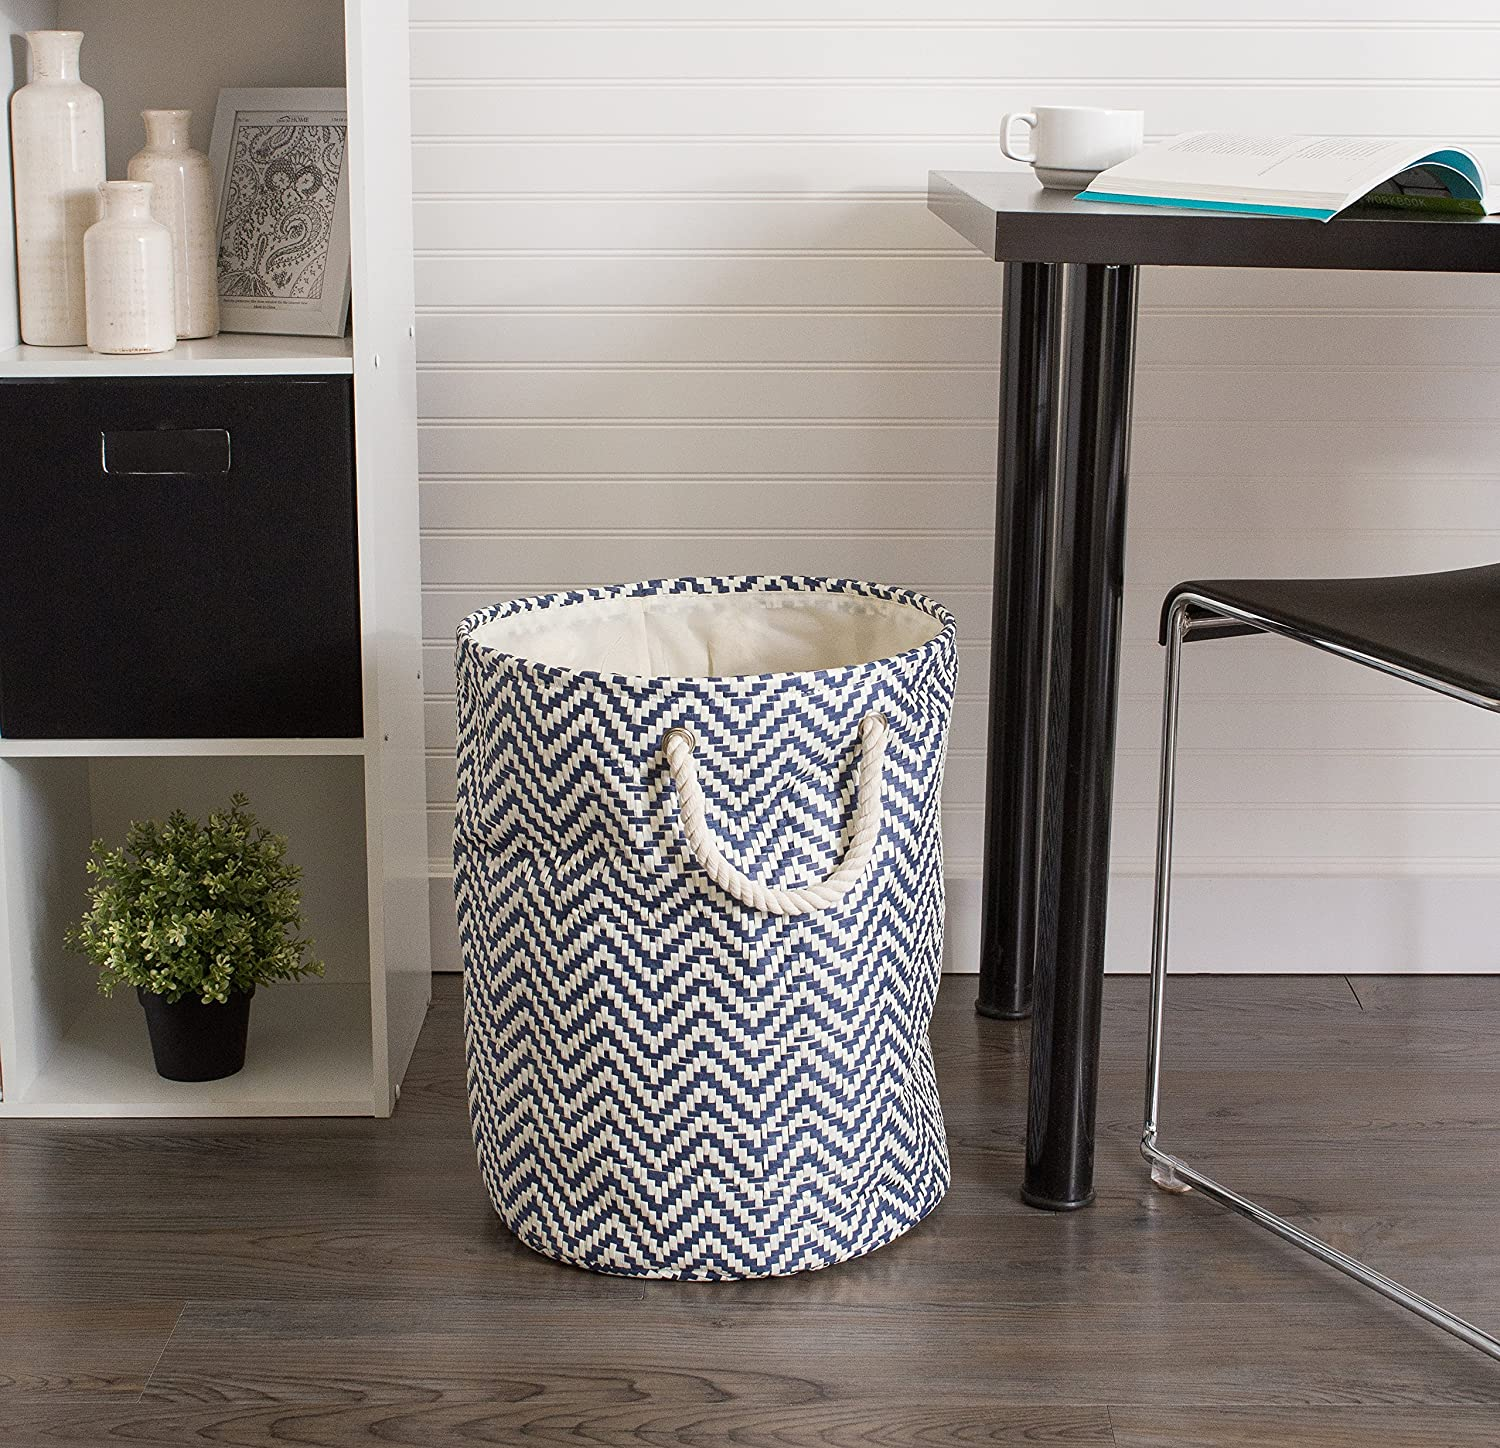 Laundry/ Small Toys - Rust Chevron Collapsible /& Convenient Storage Solution for Office Closet DII Storage Basket or Bin Bedroom